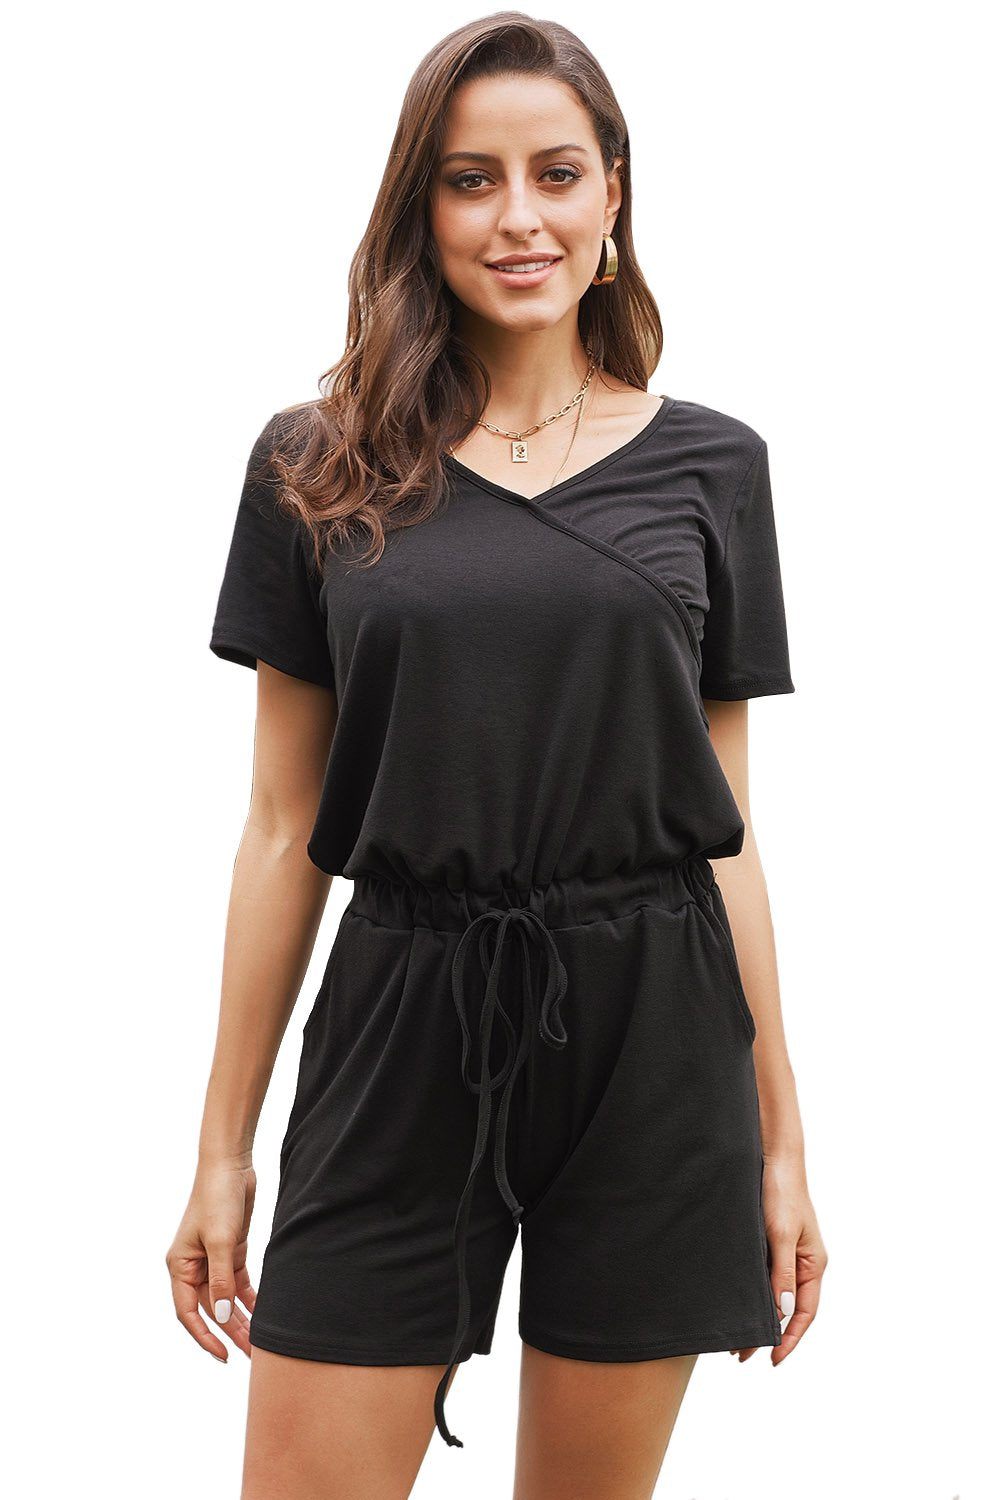 Black Casual Loose Short Sleeve Romper with Pockets-Outerwear, Jumpsuits & Rompers-Azura Exchange